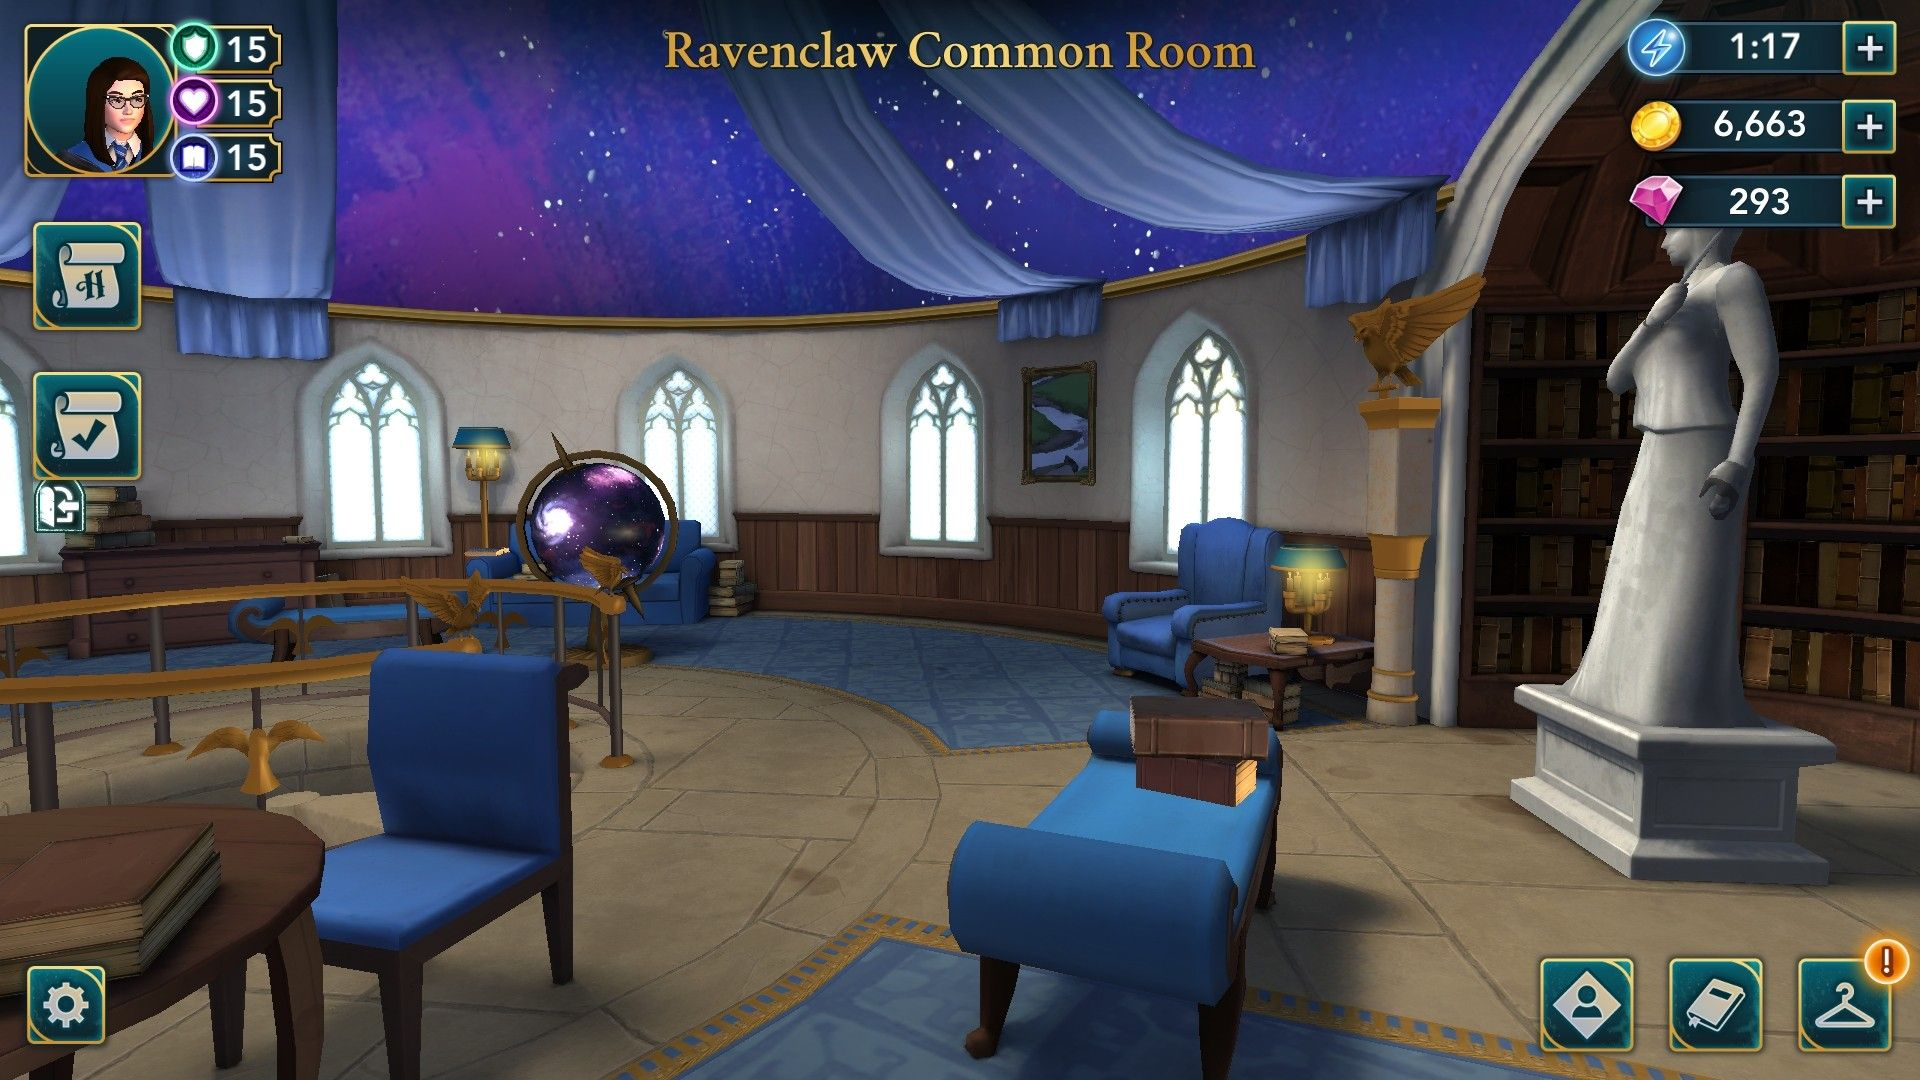 Ravenclaw Common Room Hogwarts Mystery Ravenclaw Ravenclaw Common Room